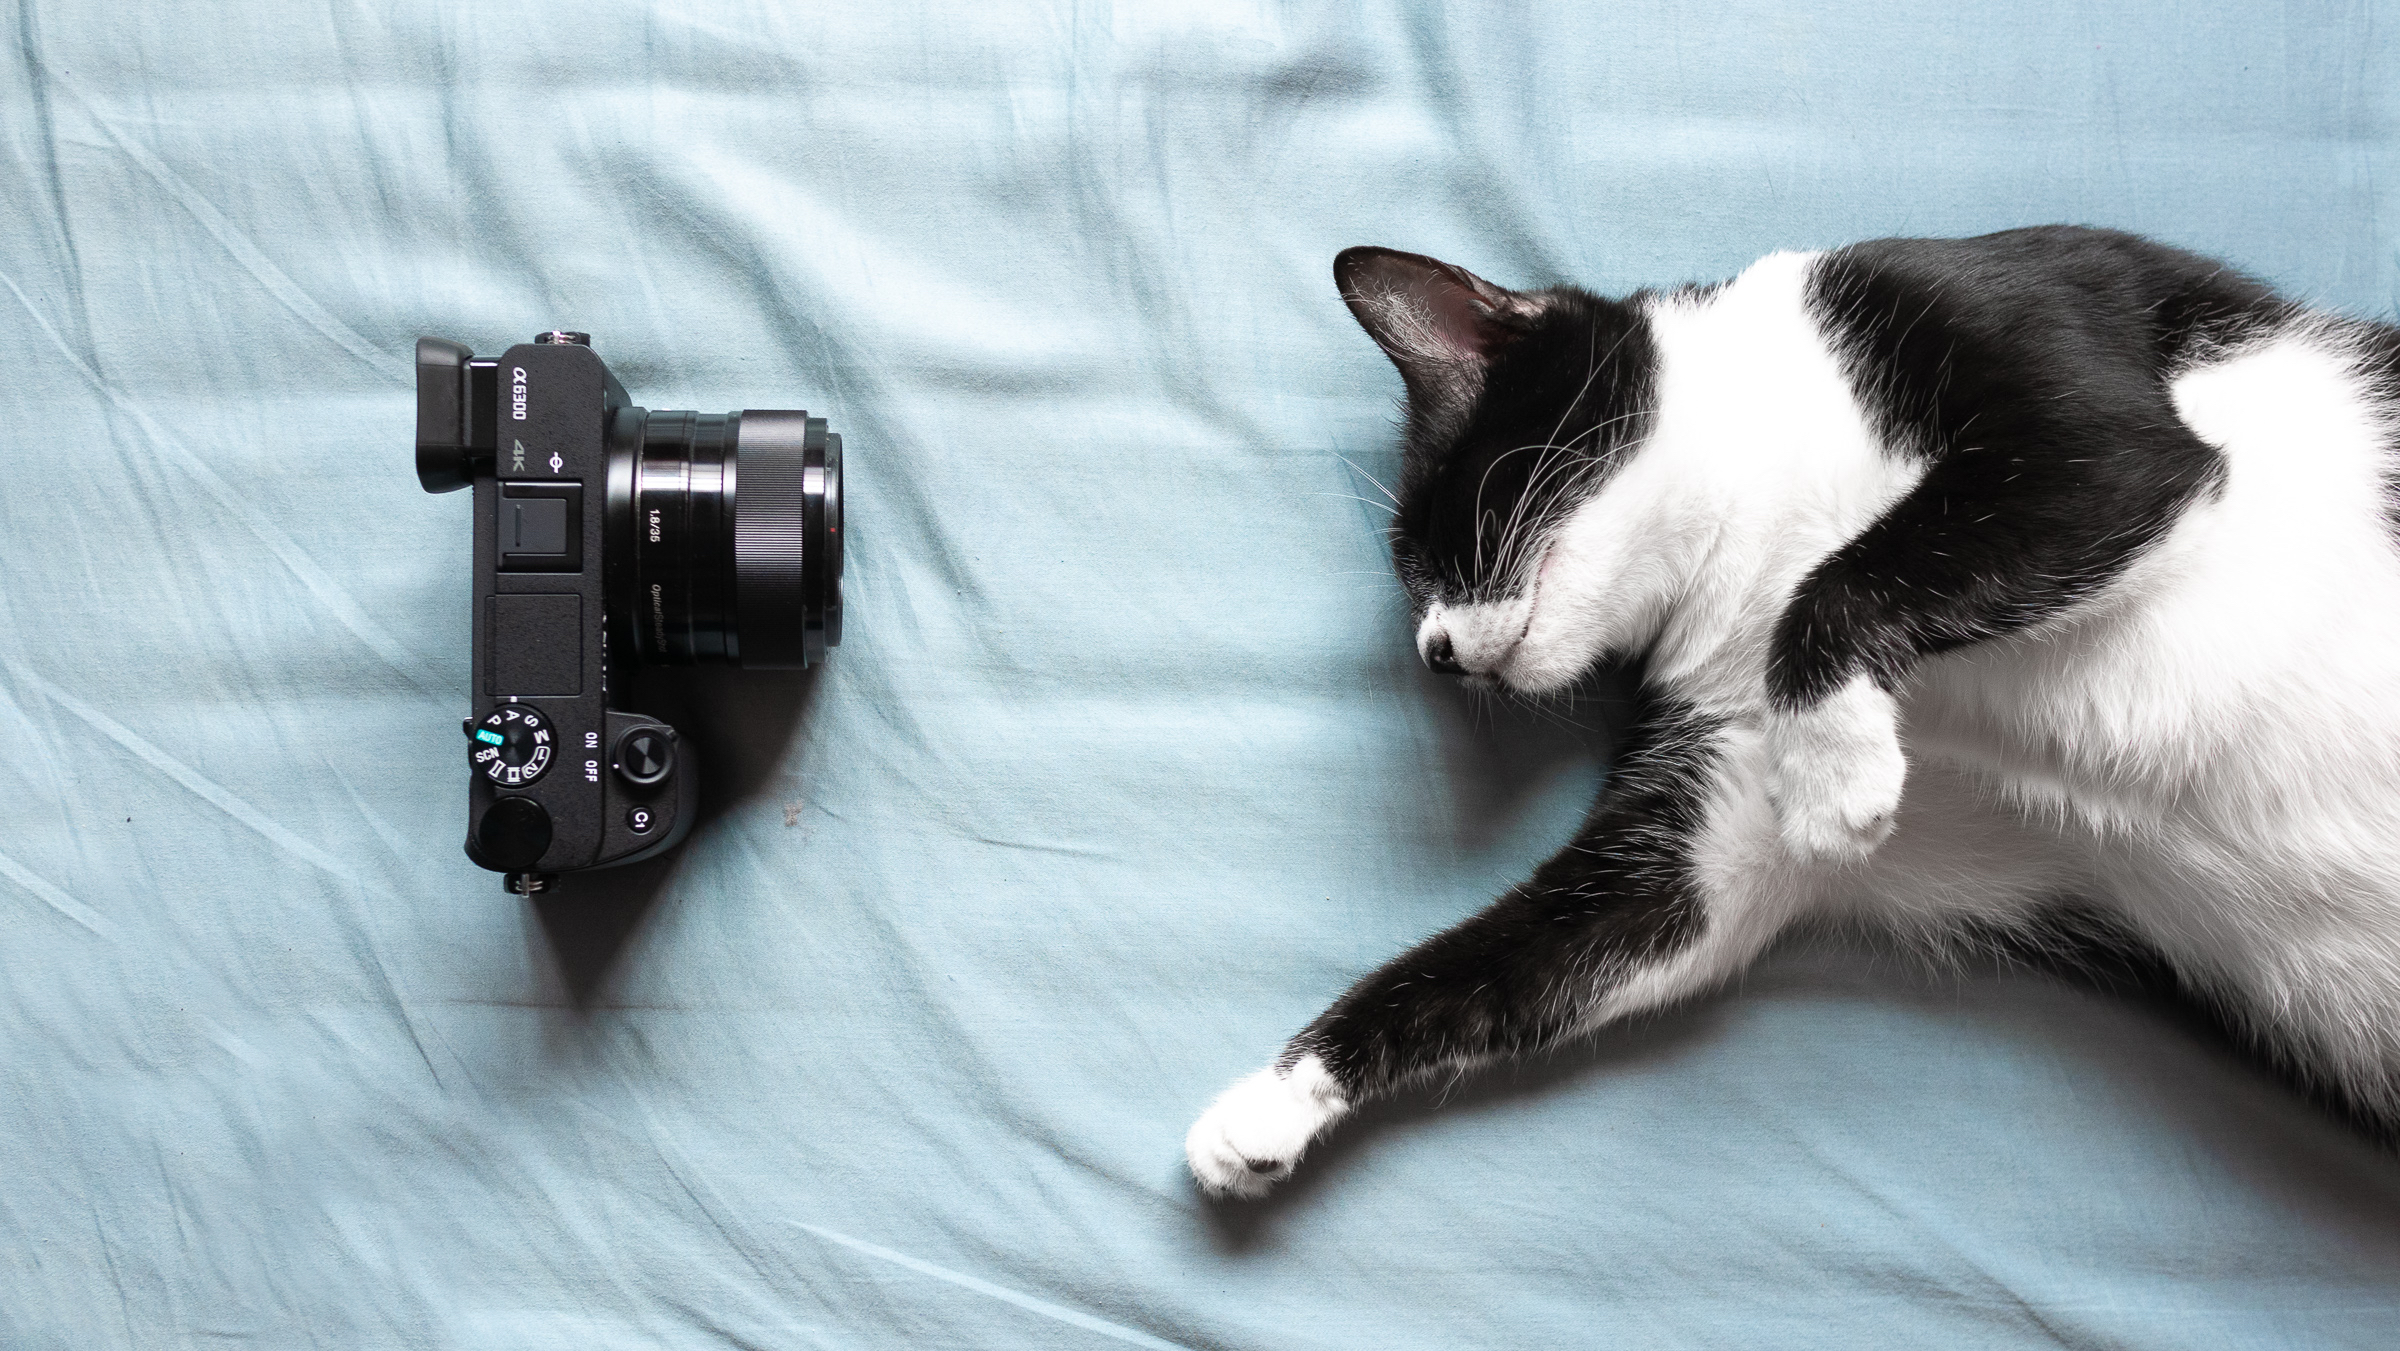 Cat sleeping on a blue bed sheet with camera in front of her